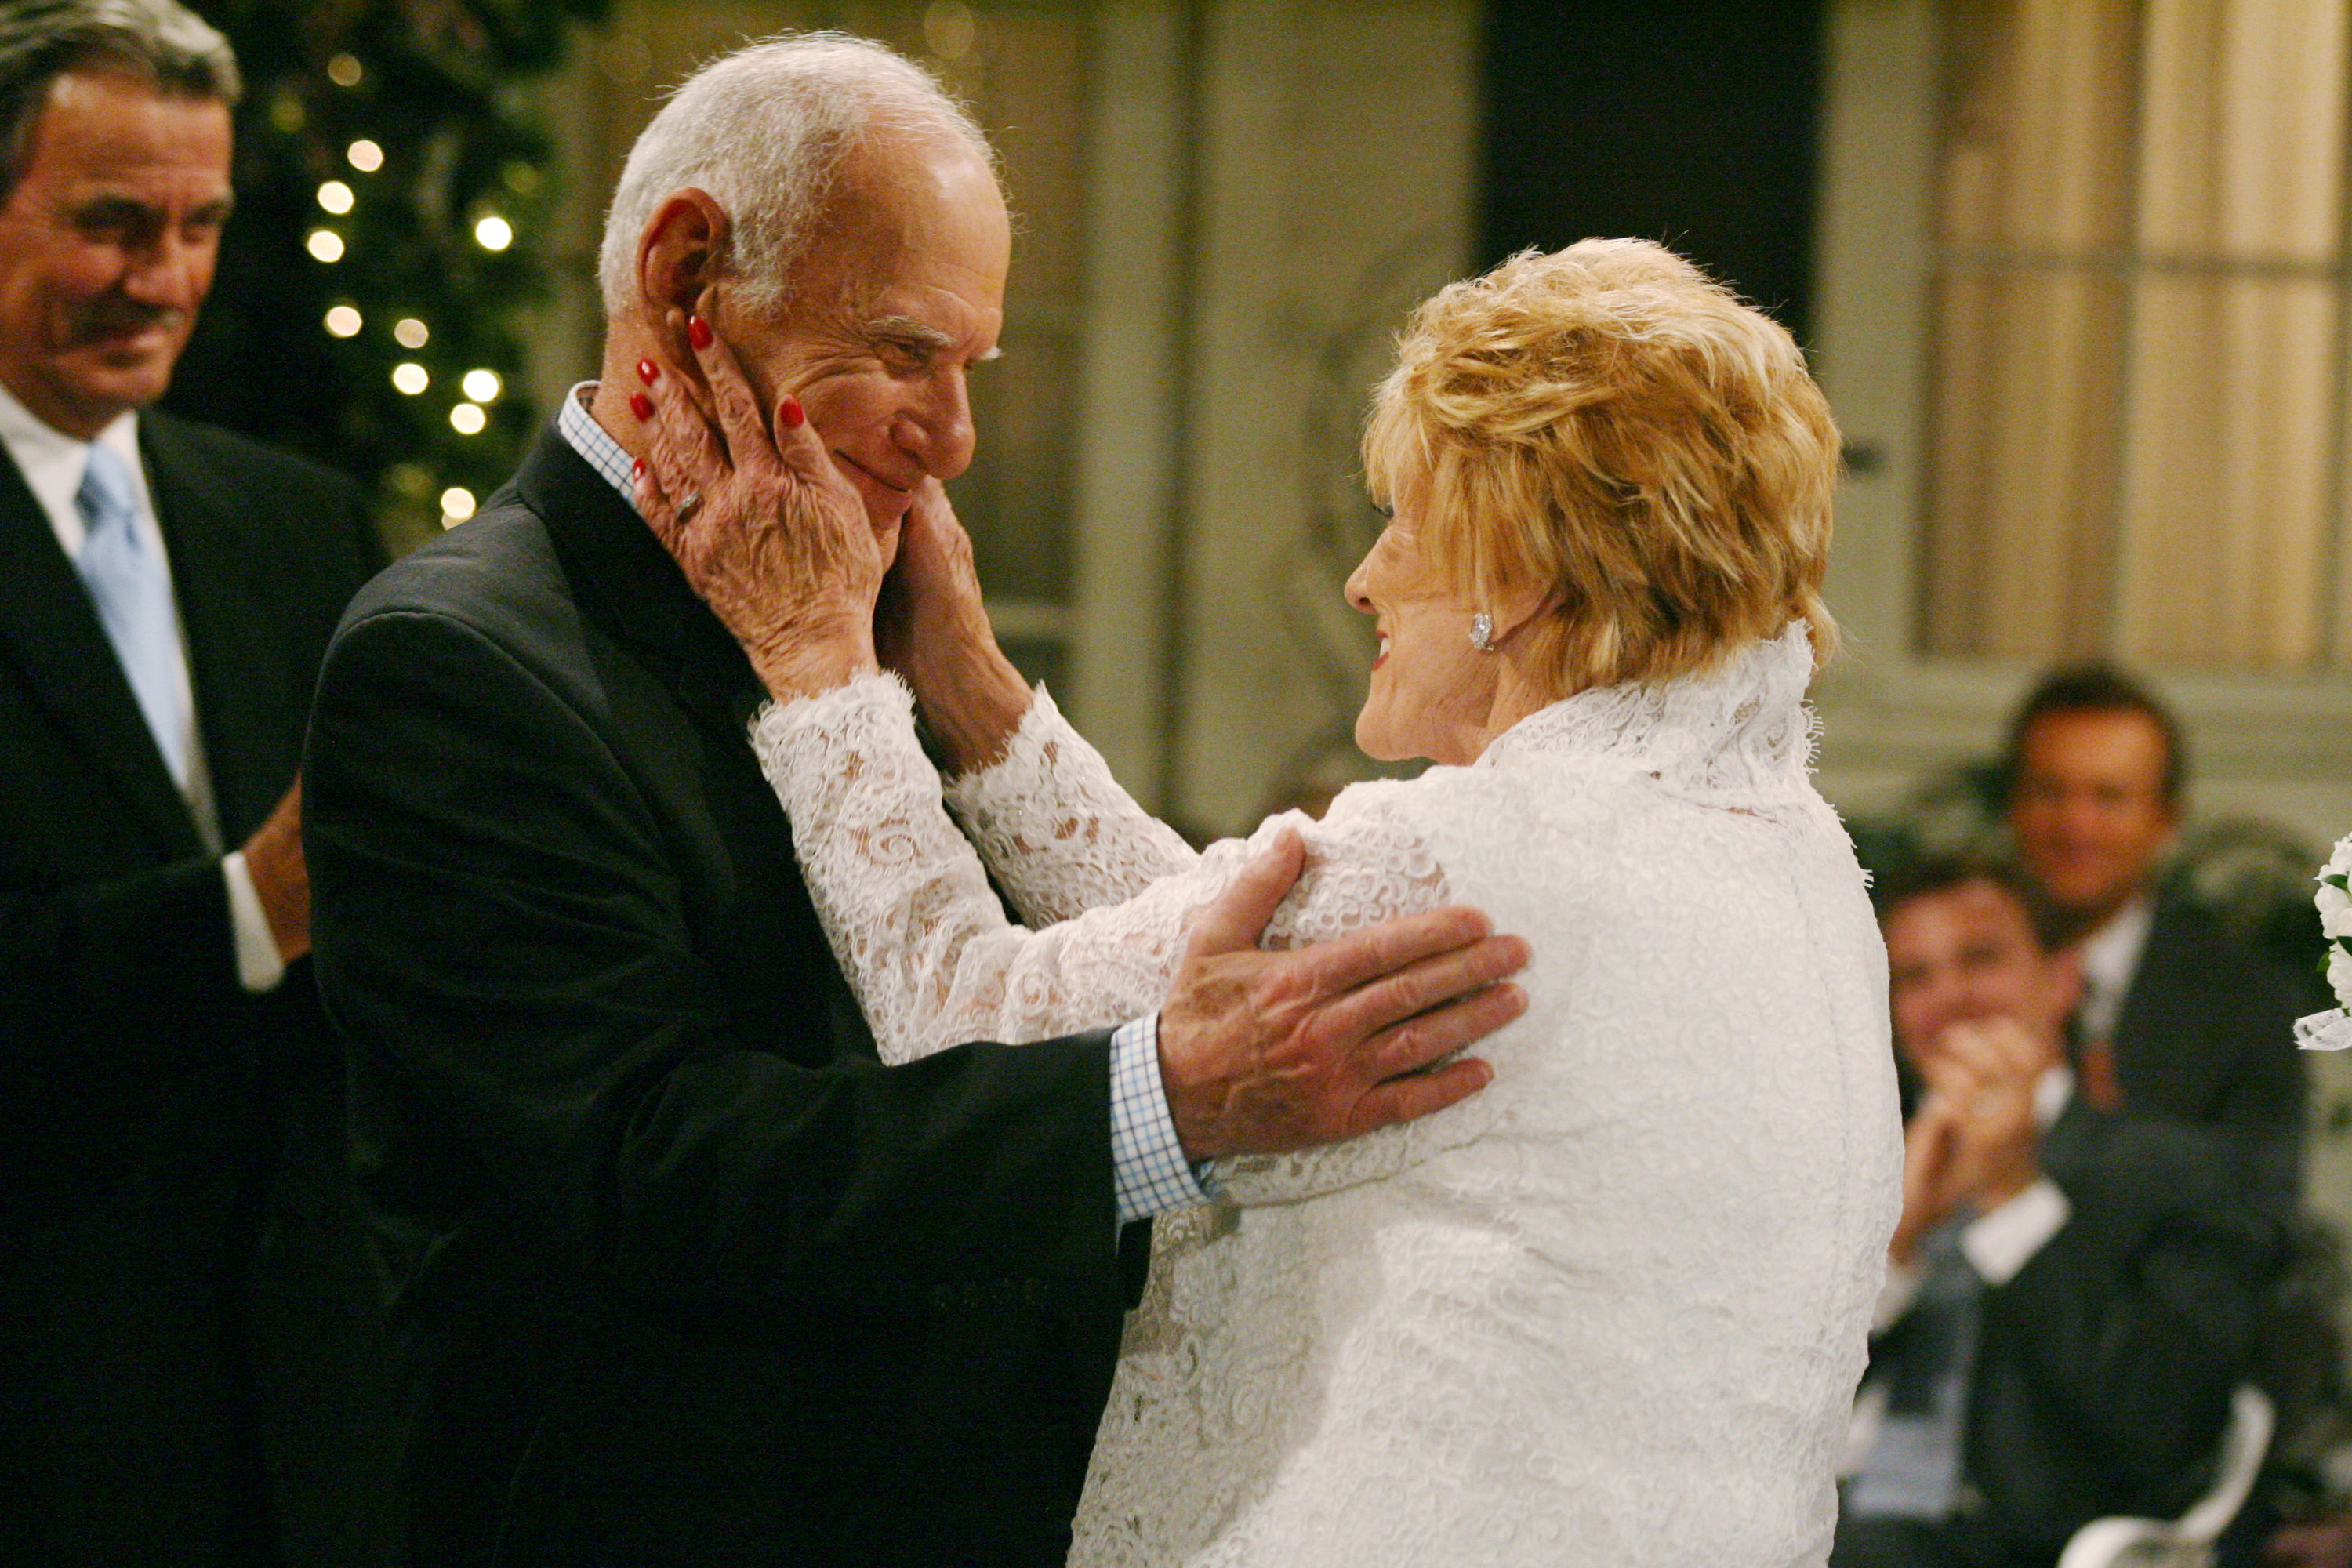 Patrick Murphy and Katherine Chancellor found happiness together later in life.